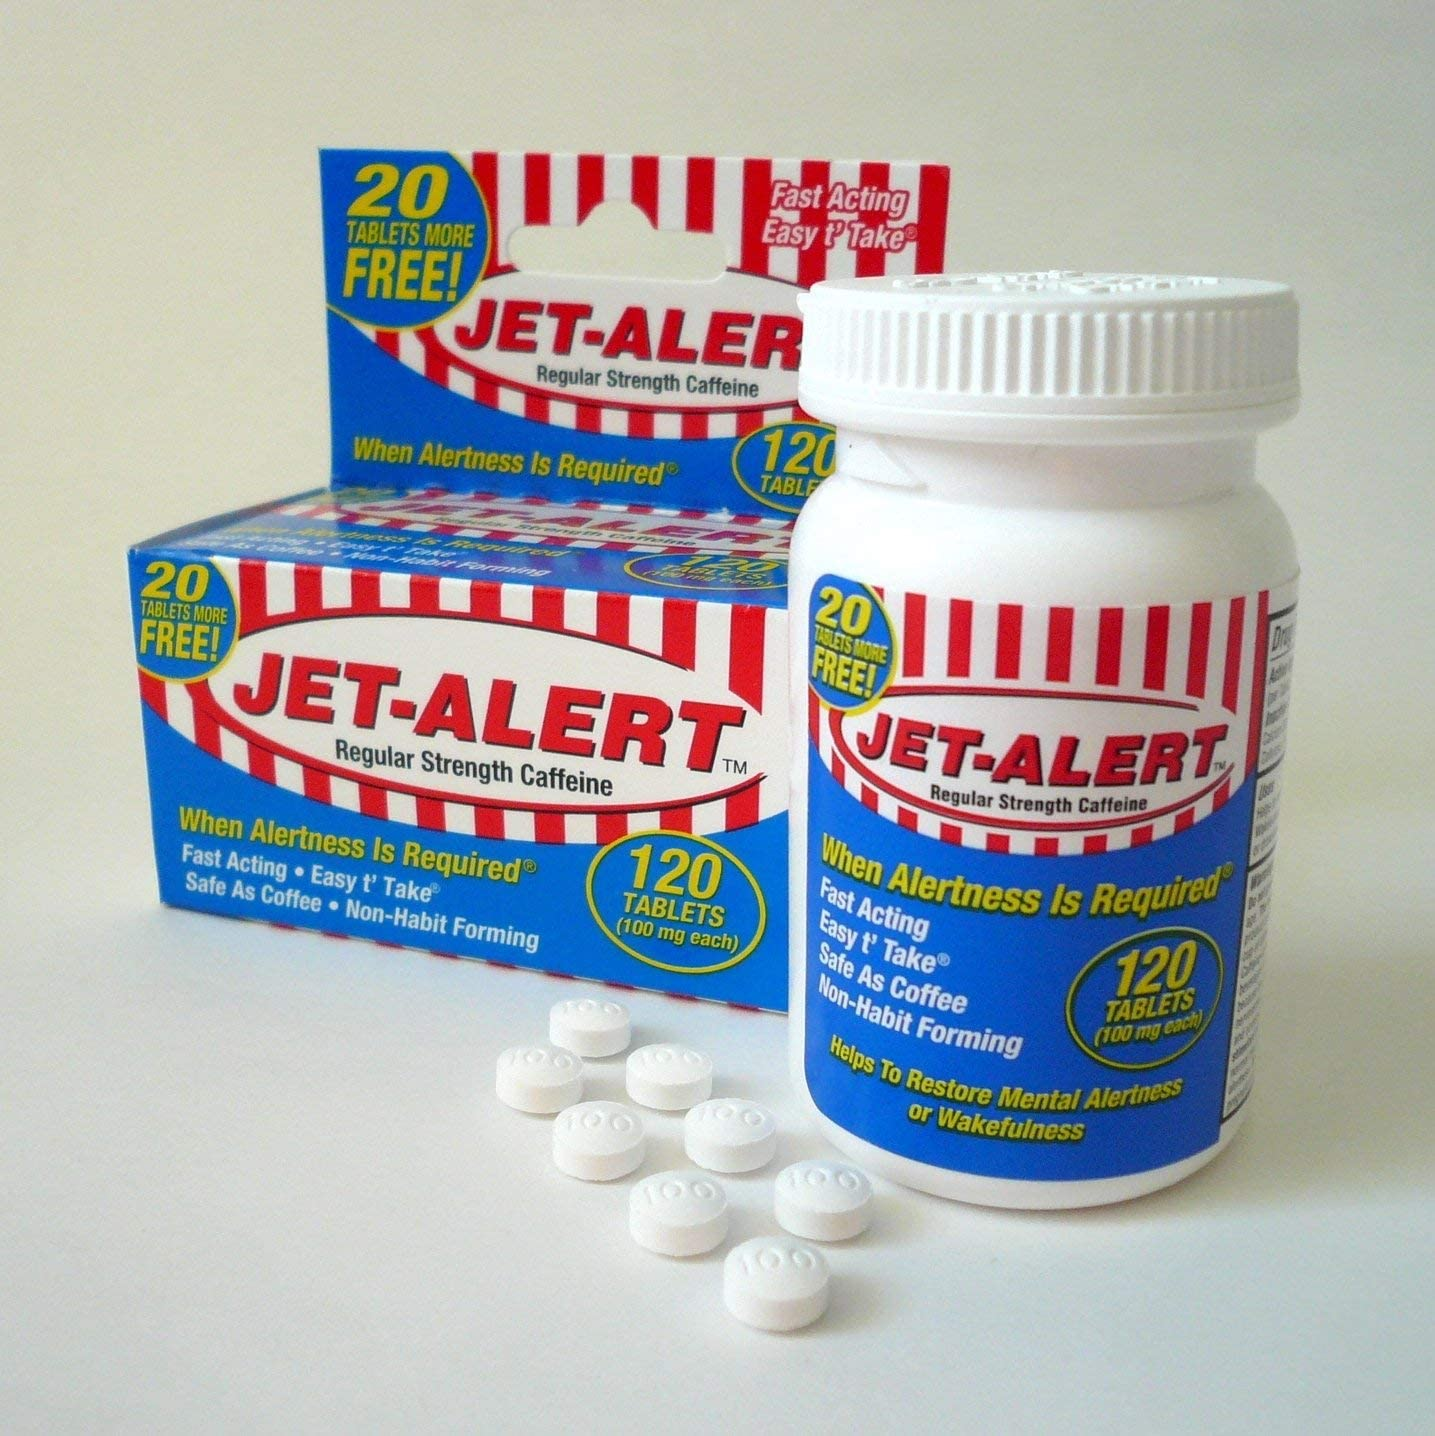 Jet-alert 100 Mg Each Caffeine Tab 120 Count Value Packs 2